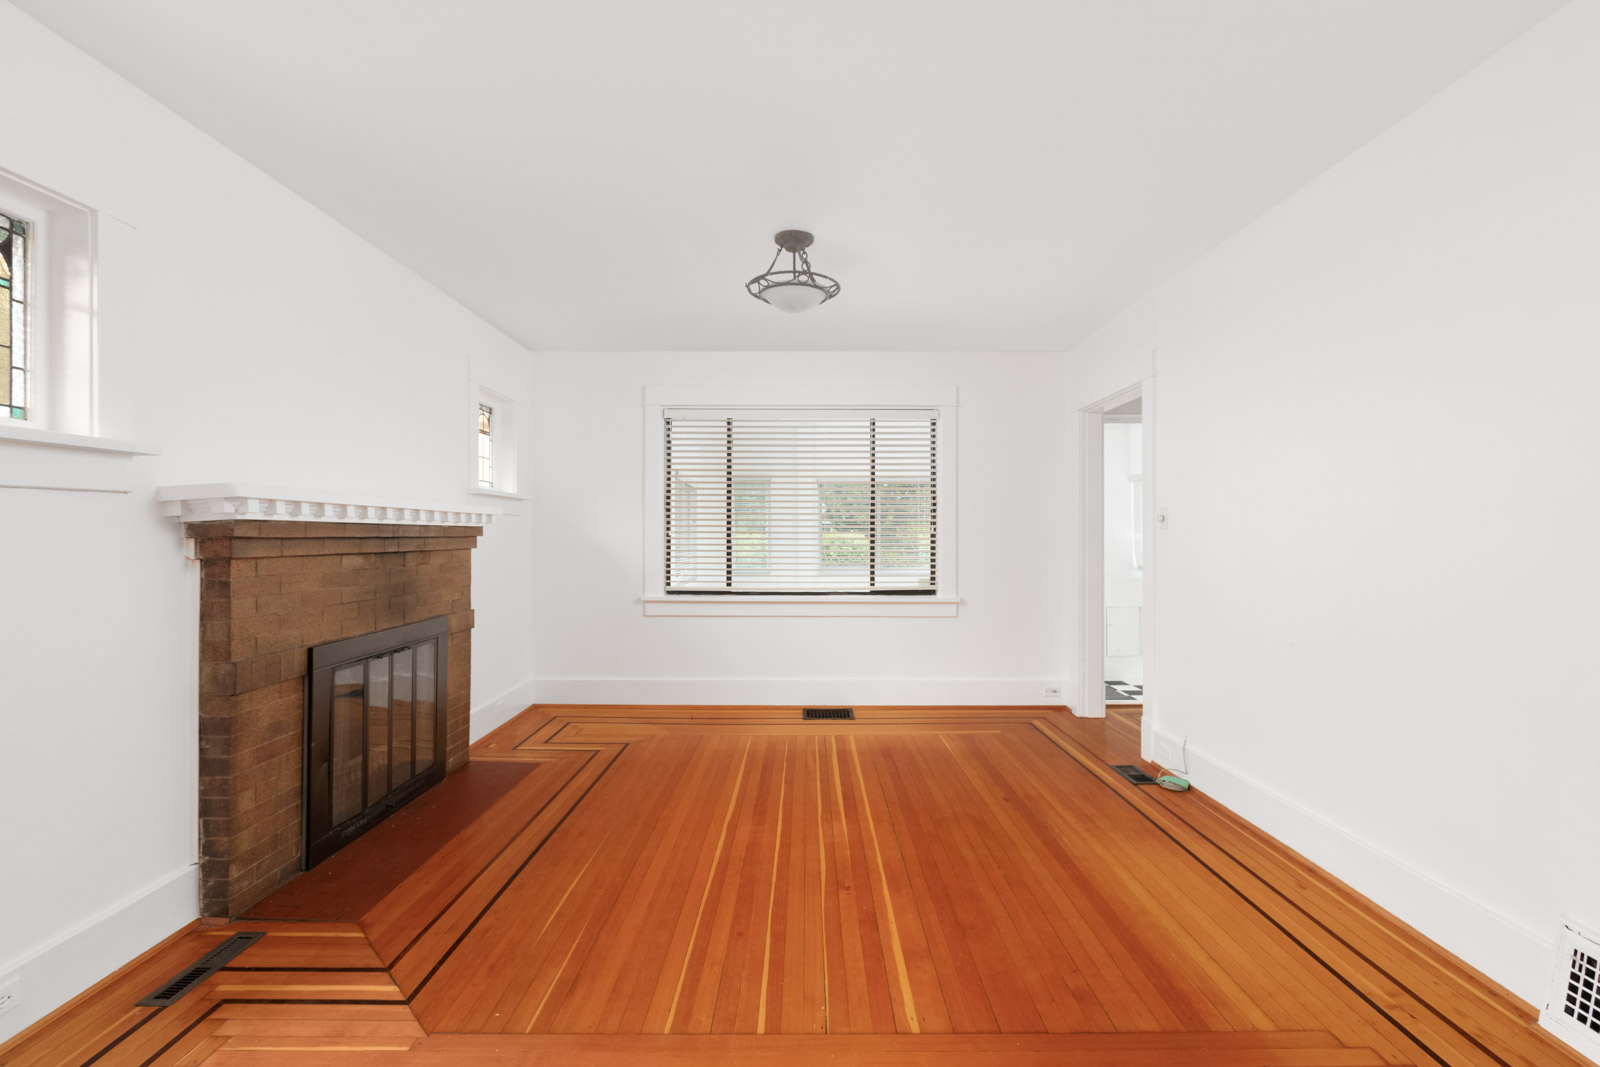 Living room in Kerrisdale Vancouver house with hardwood floor and fireplace on the left